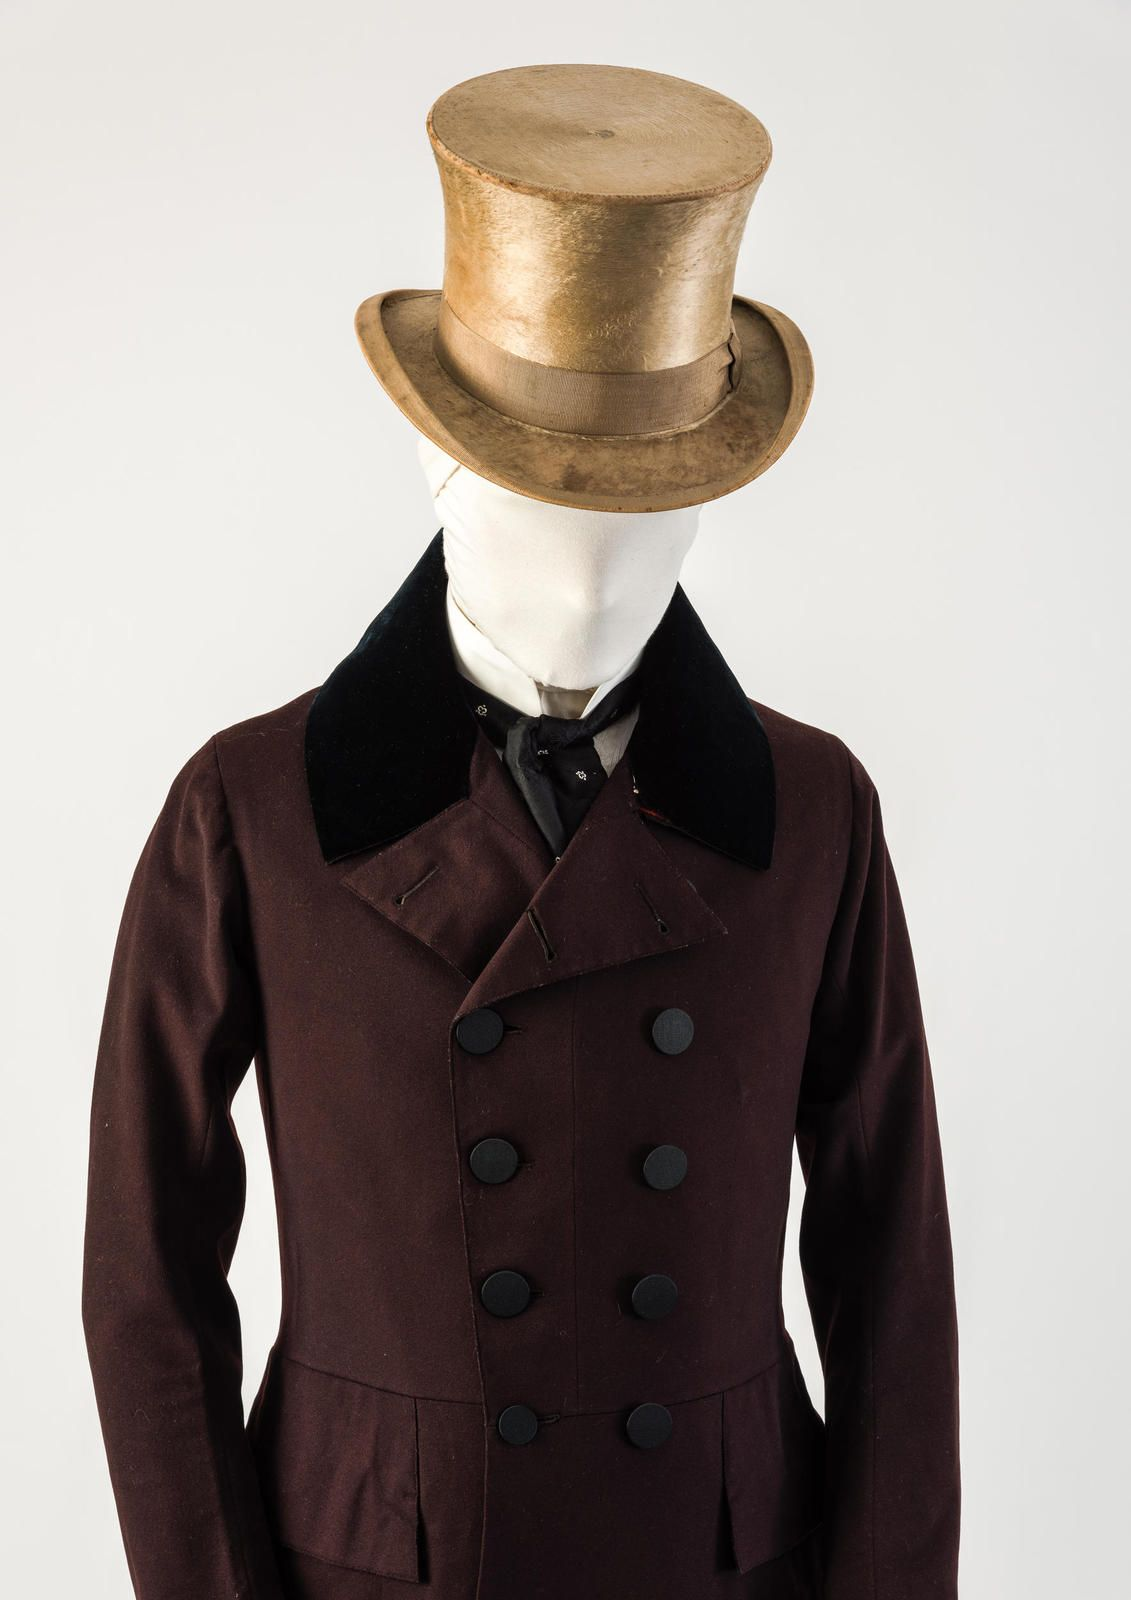 c1f5406f7f9 A frock coat and beaver top hat. Also a neck tie common from 1820-1850.  www.fashionmuseum.co.uk galleries history-fashion-100-objects-gallery